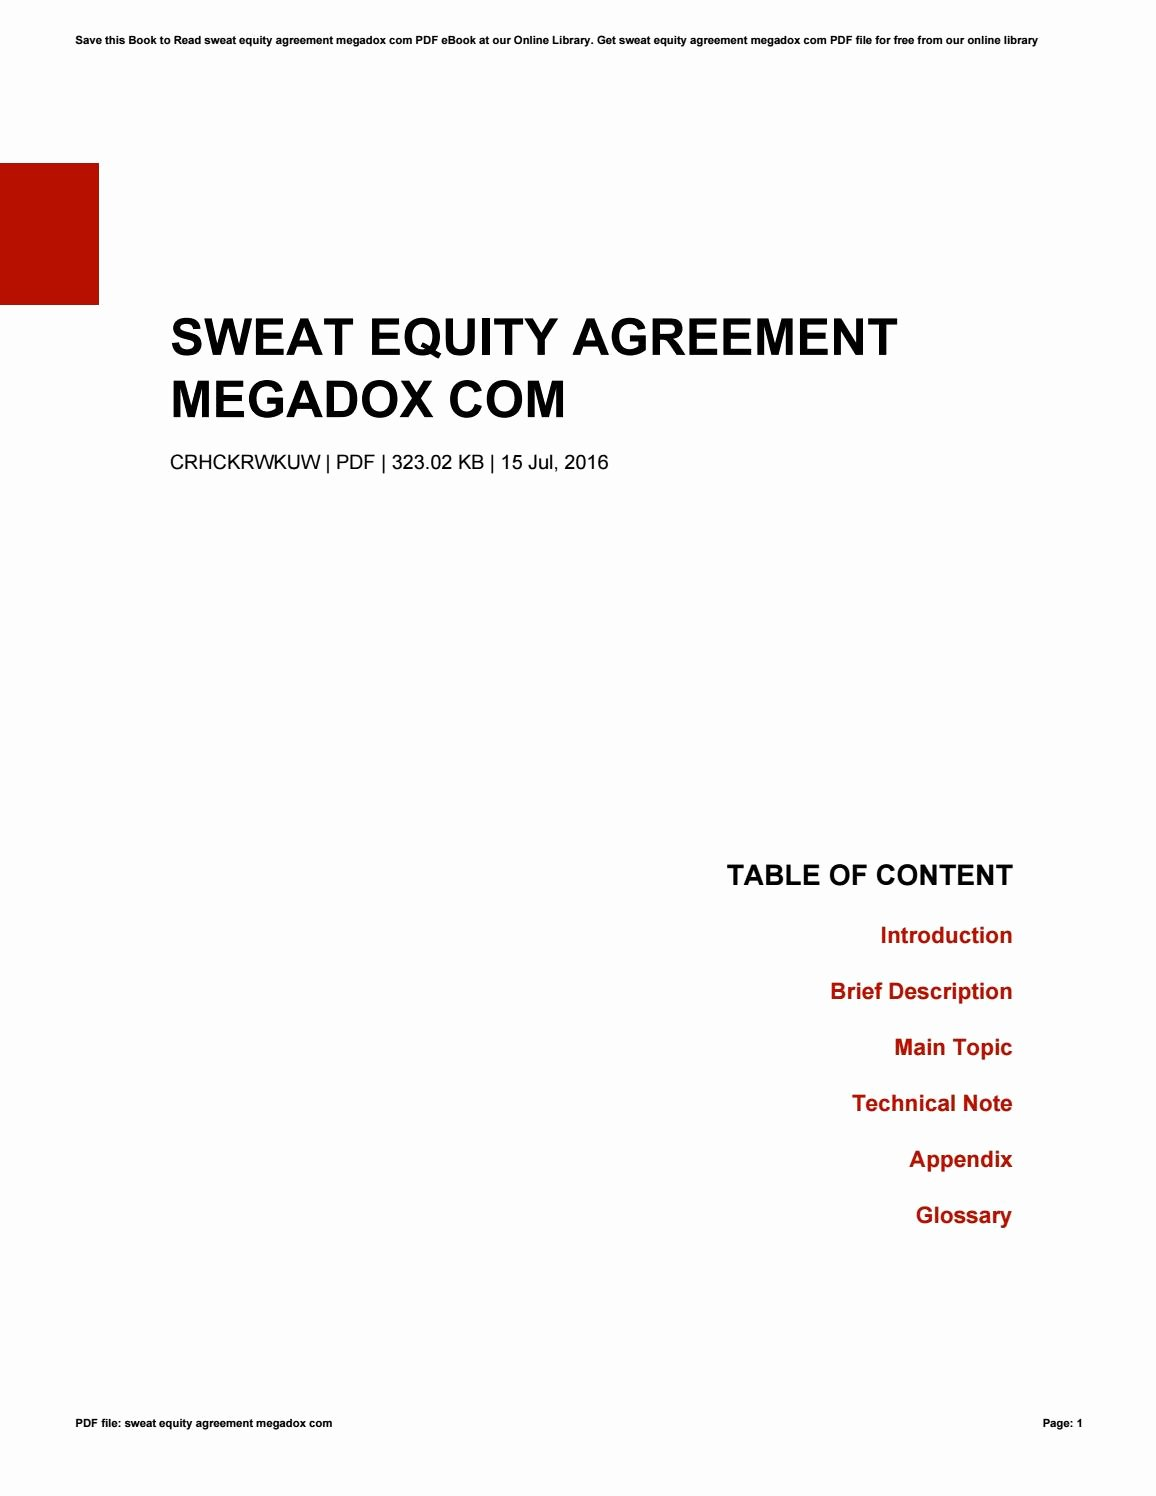 Equity Share Agreement Template Luxury Sweat Equity Agreement Megadox by theresaholford4092